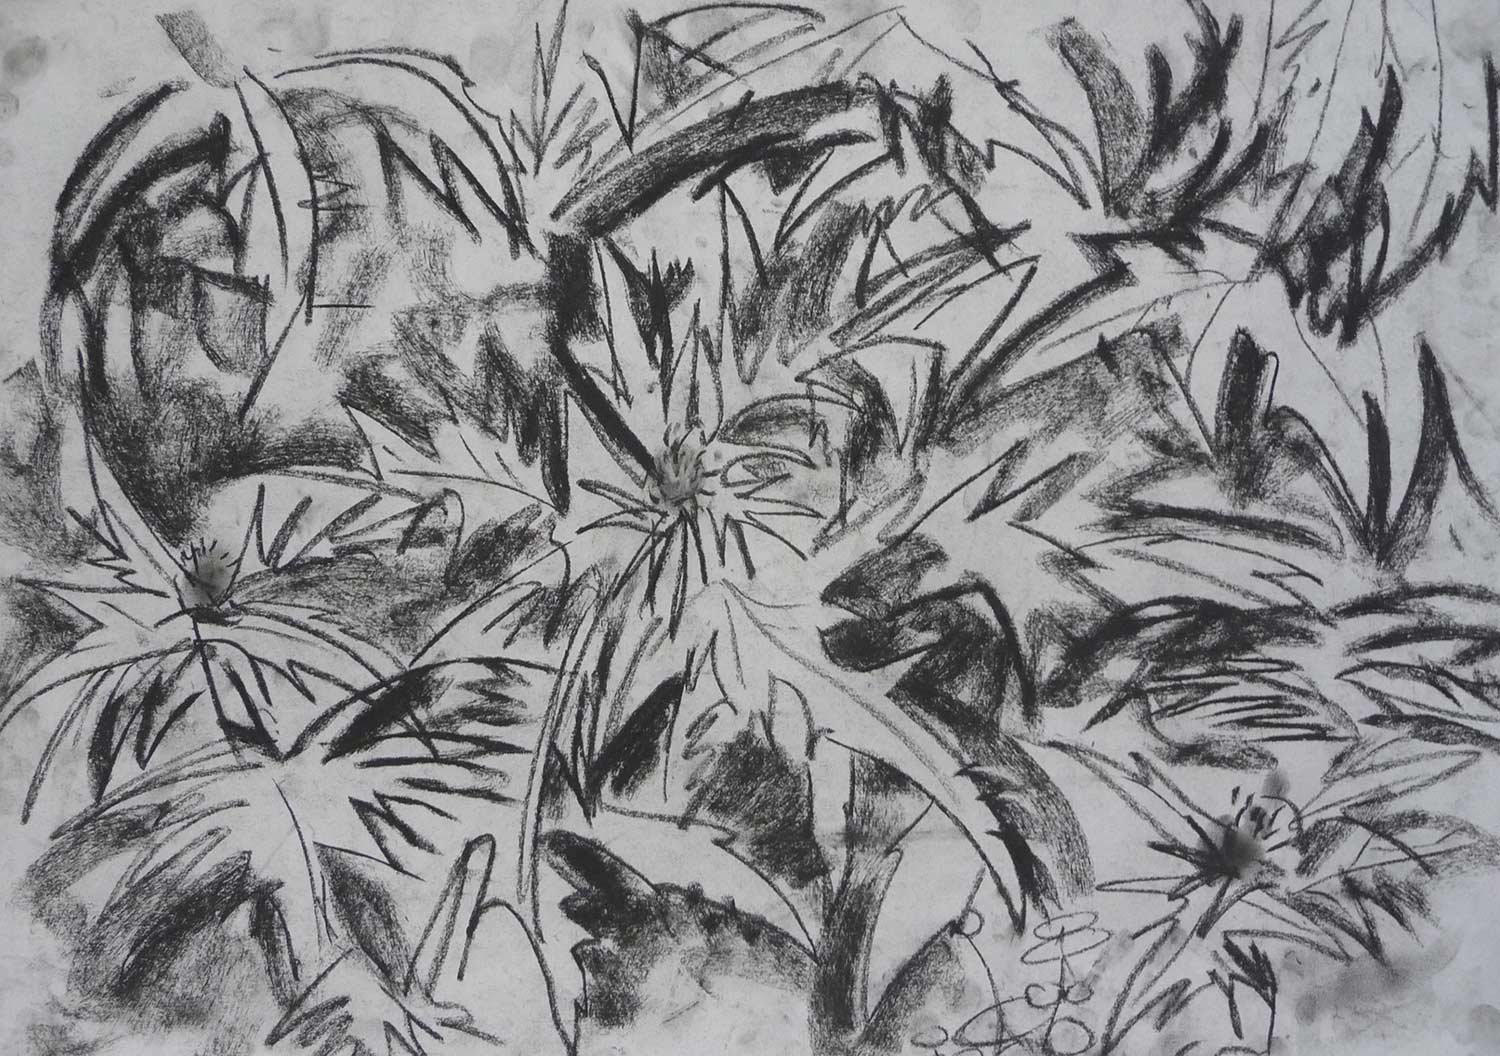 dark-drawing-spiky-leaves.jpg